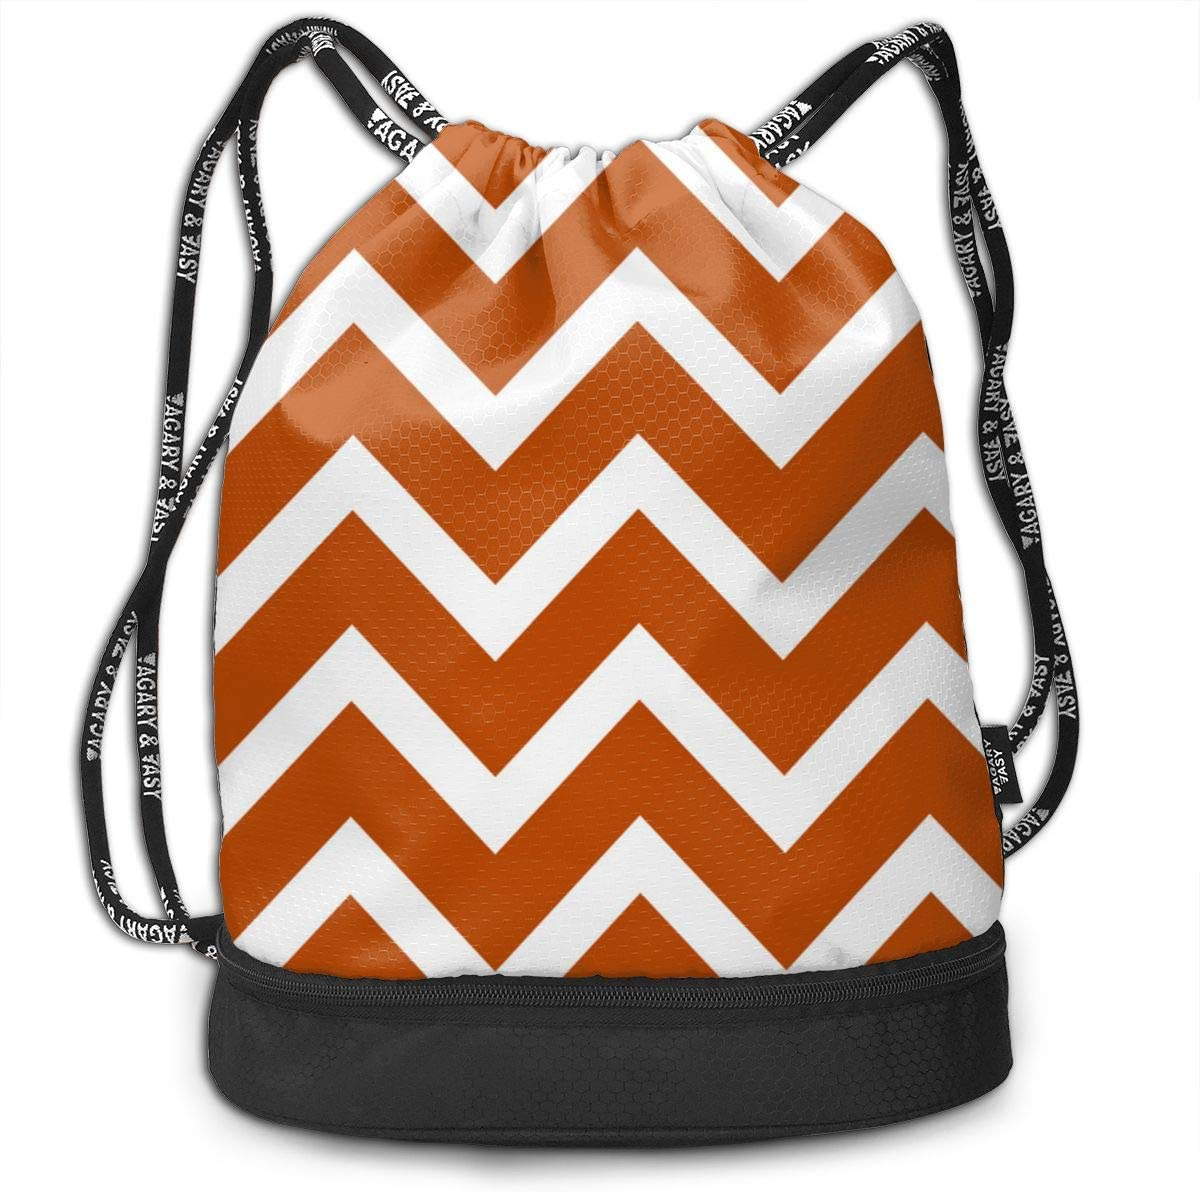 Orange Chevron Large Scale Drawstring Backpack Sports Athletic Gym Cinch Sack String Storage Bags for Hiking Travel Beach